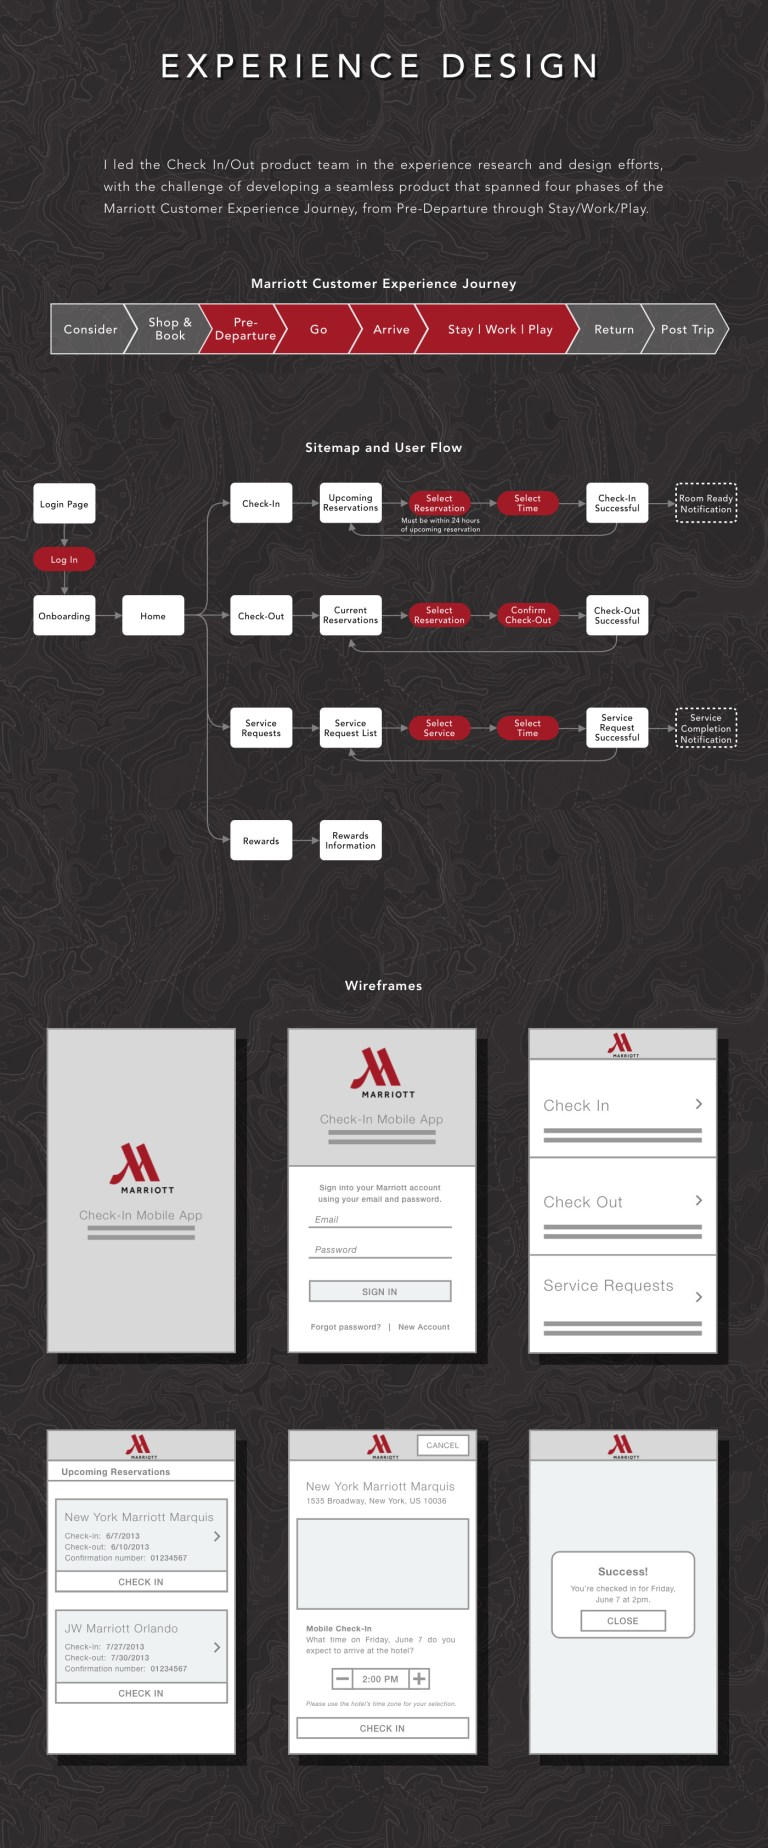 portfolio - Marriott-CheckIn-Mobile-App - UX design